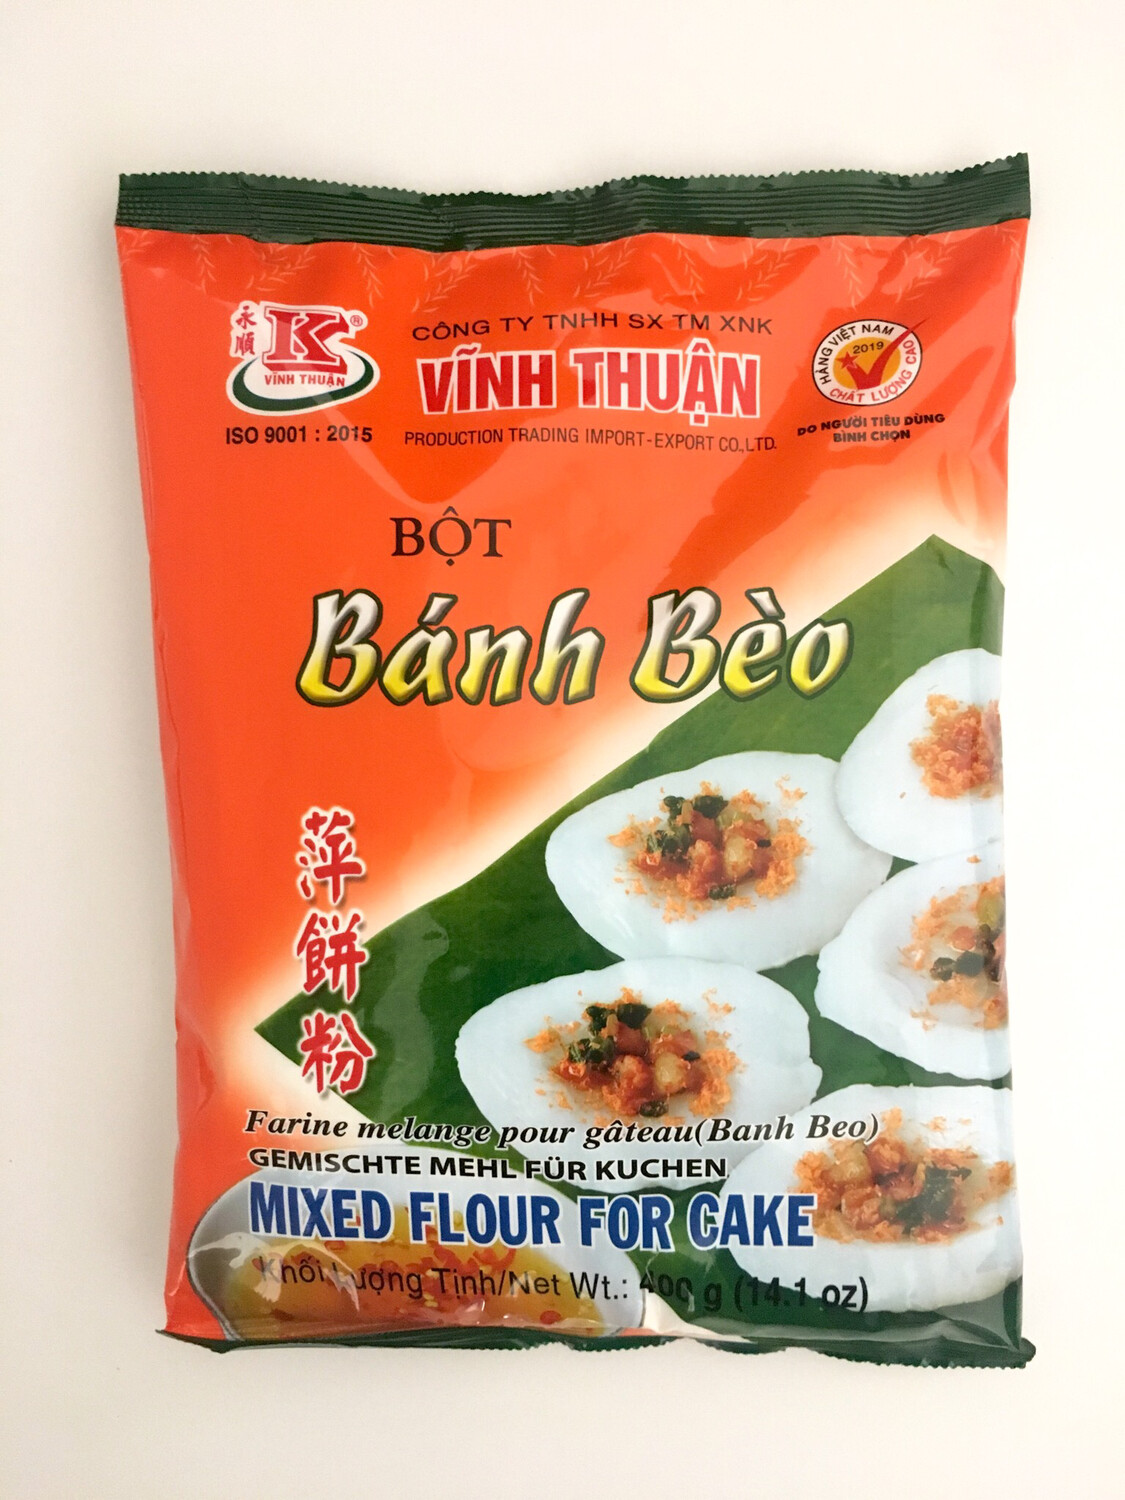 VINH THUAN BANH BEO (MIXED FLOUR FOR CAKE) 20X400G